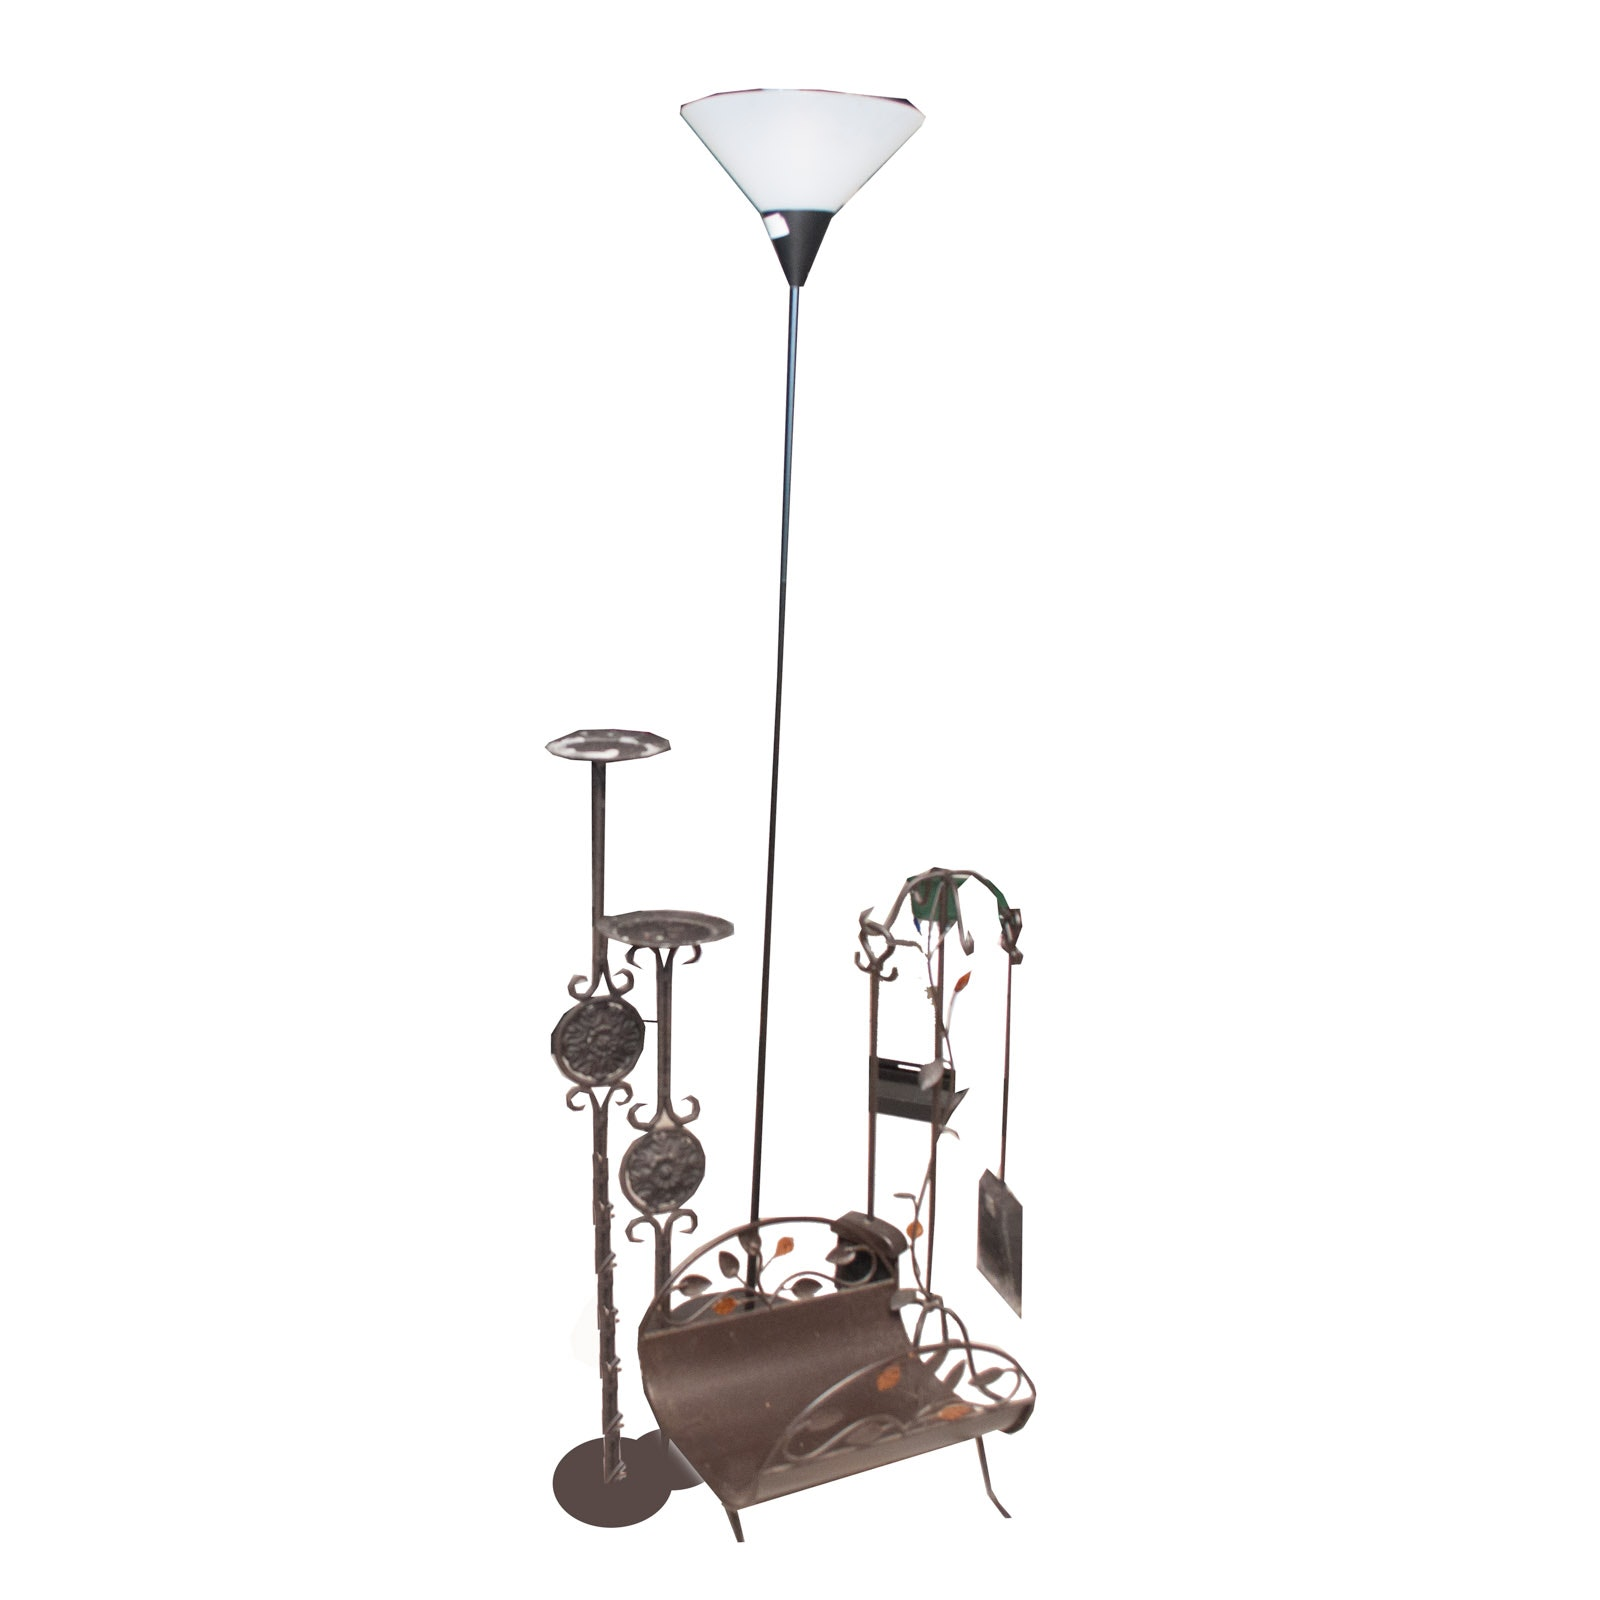 Metal Decor Assortment With Torchiere Lamp and Fireplace Tools